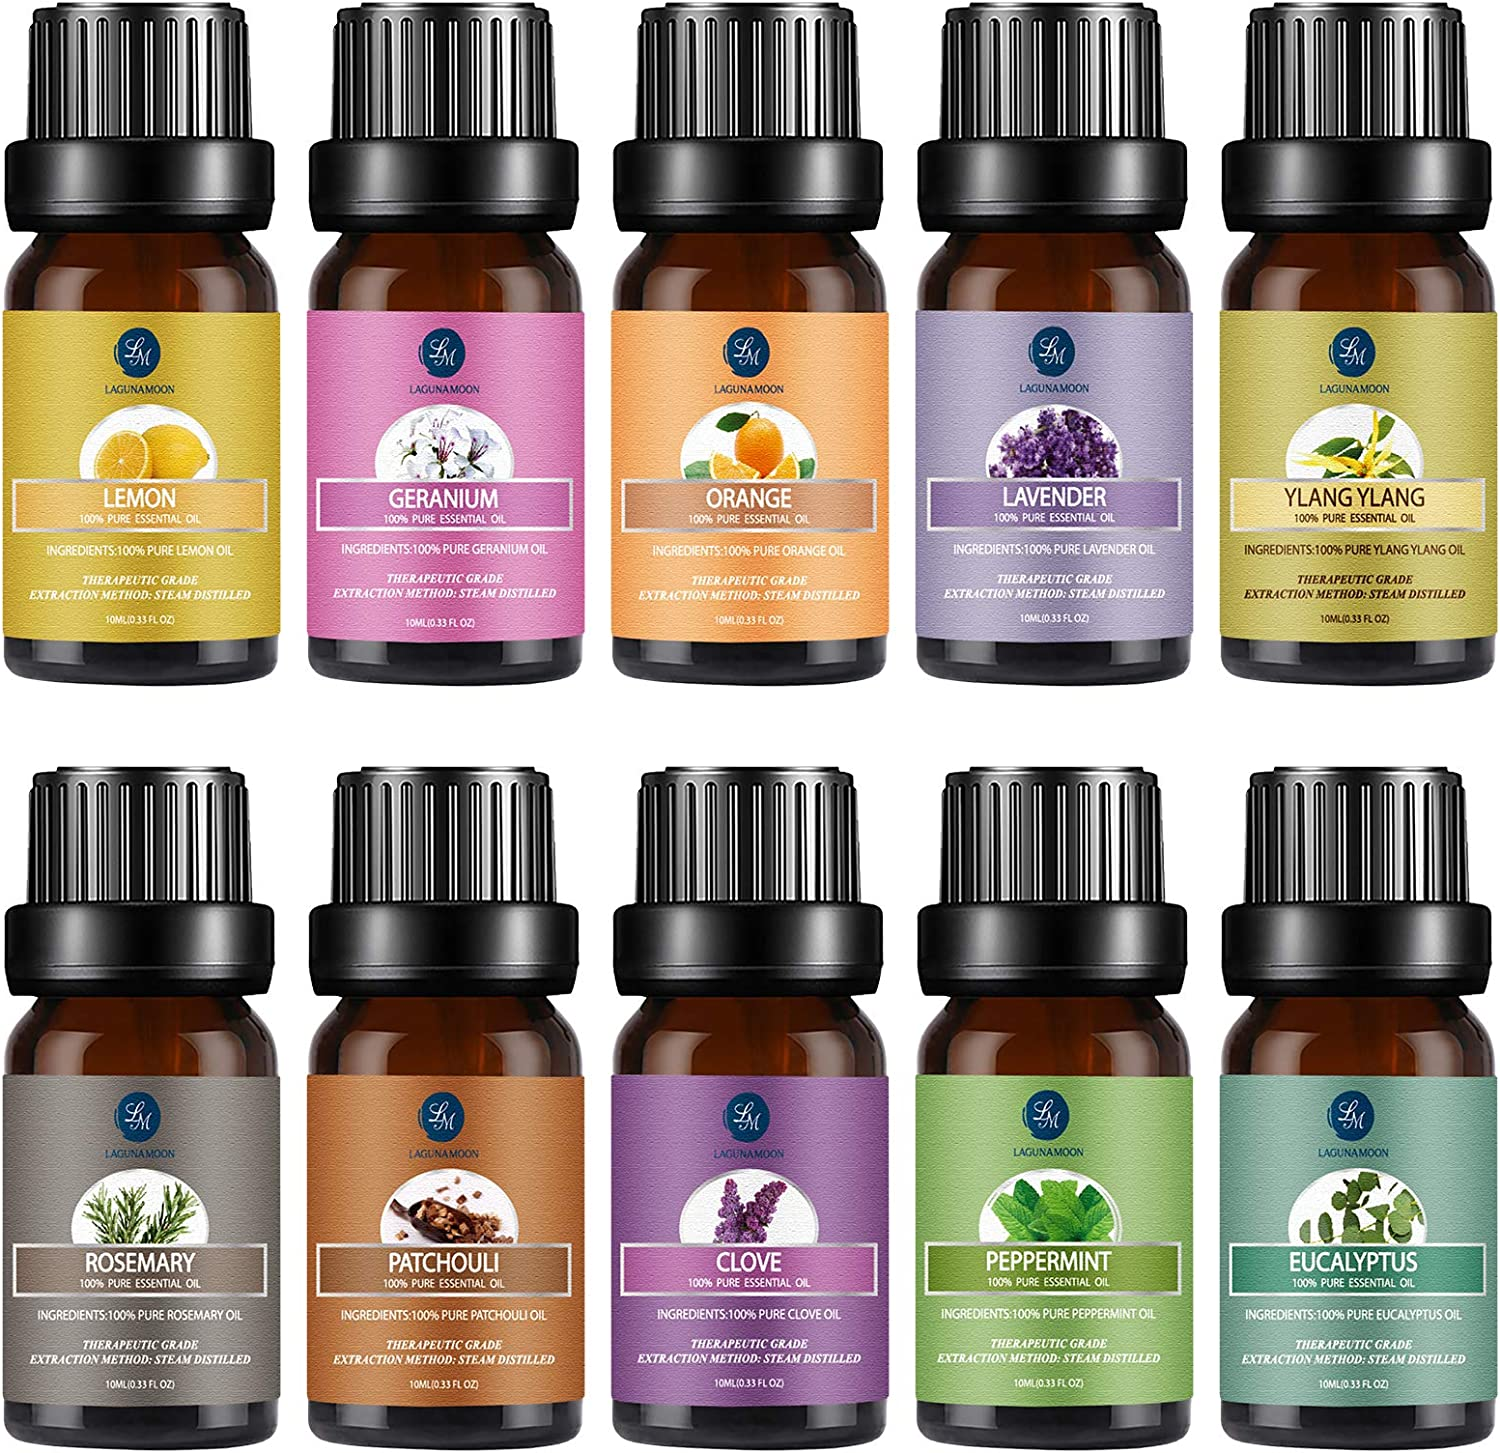 Lagunamoon Essential Oils Gift Set for Diffuser: Health & Personal Care